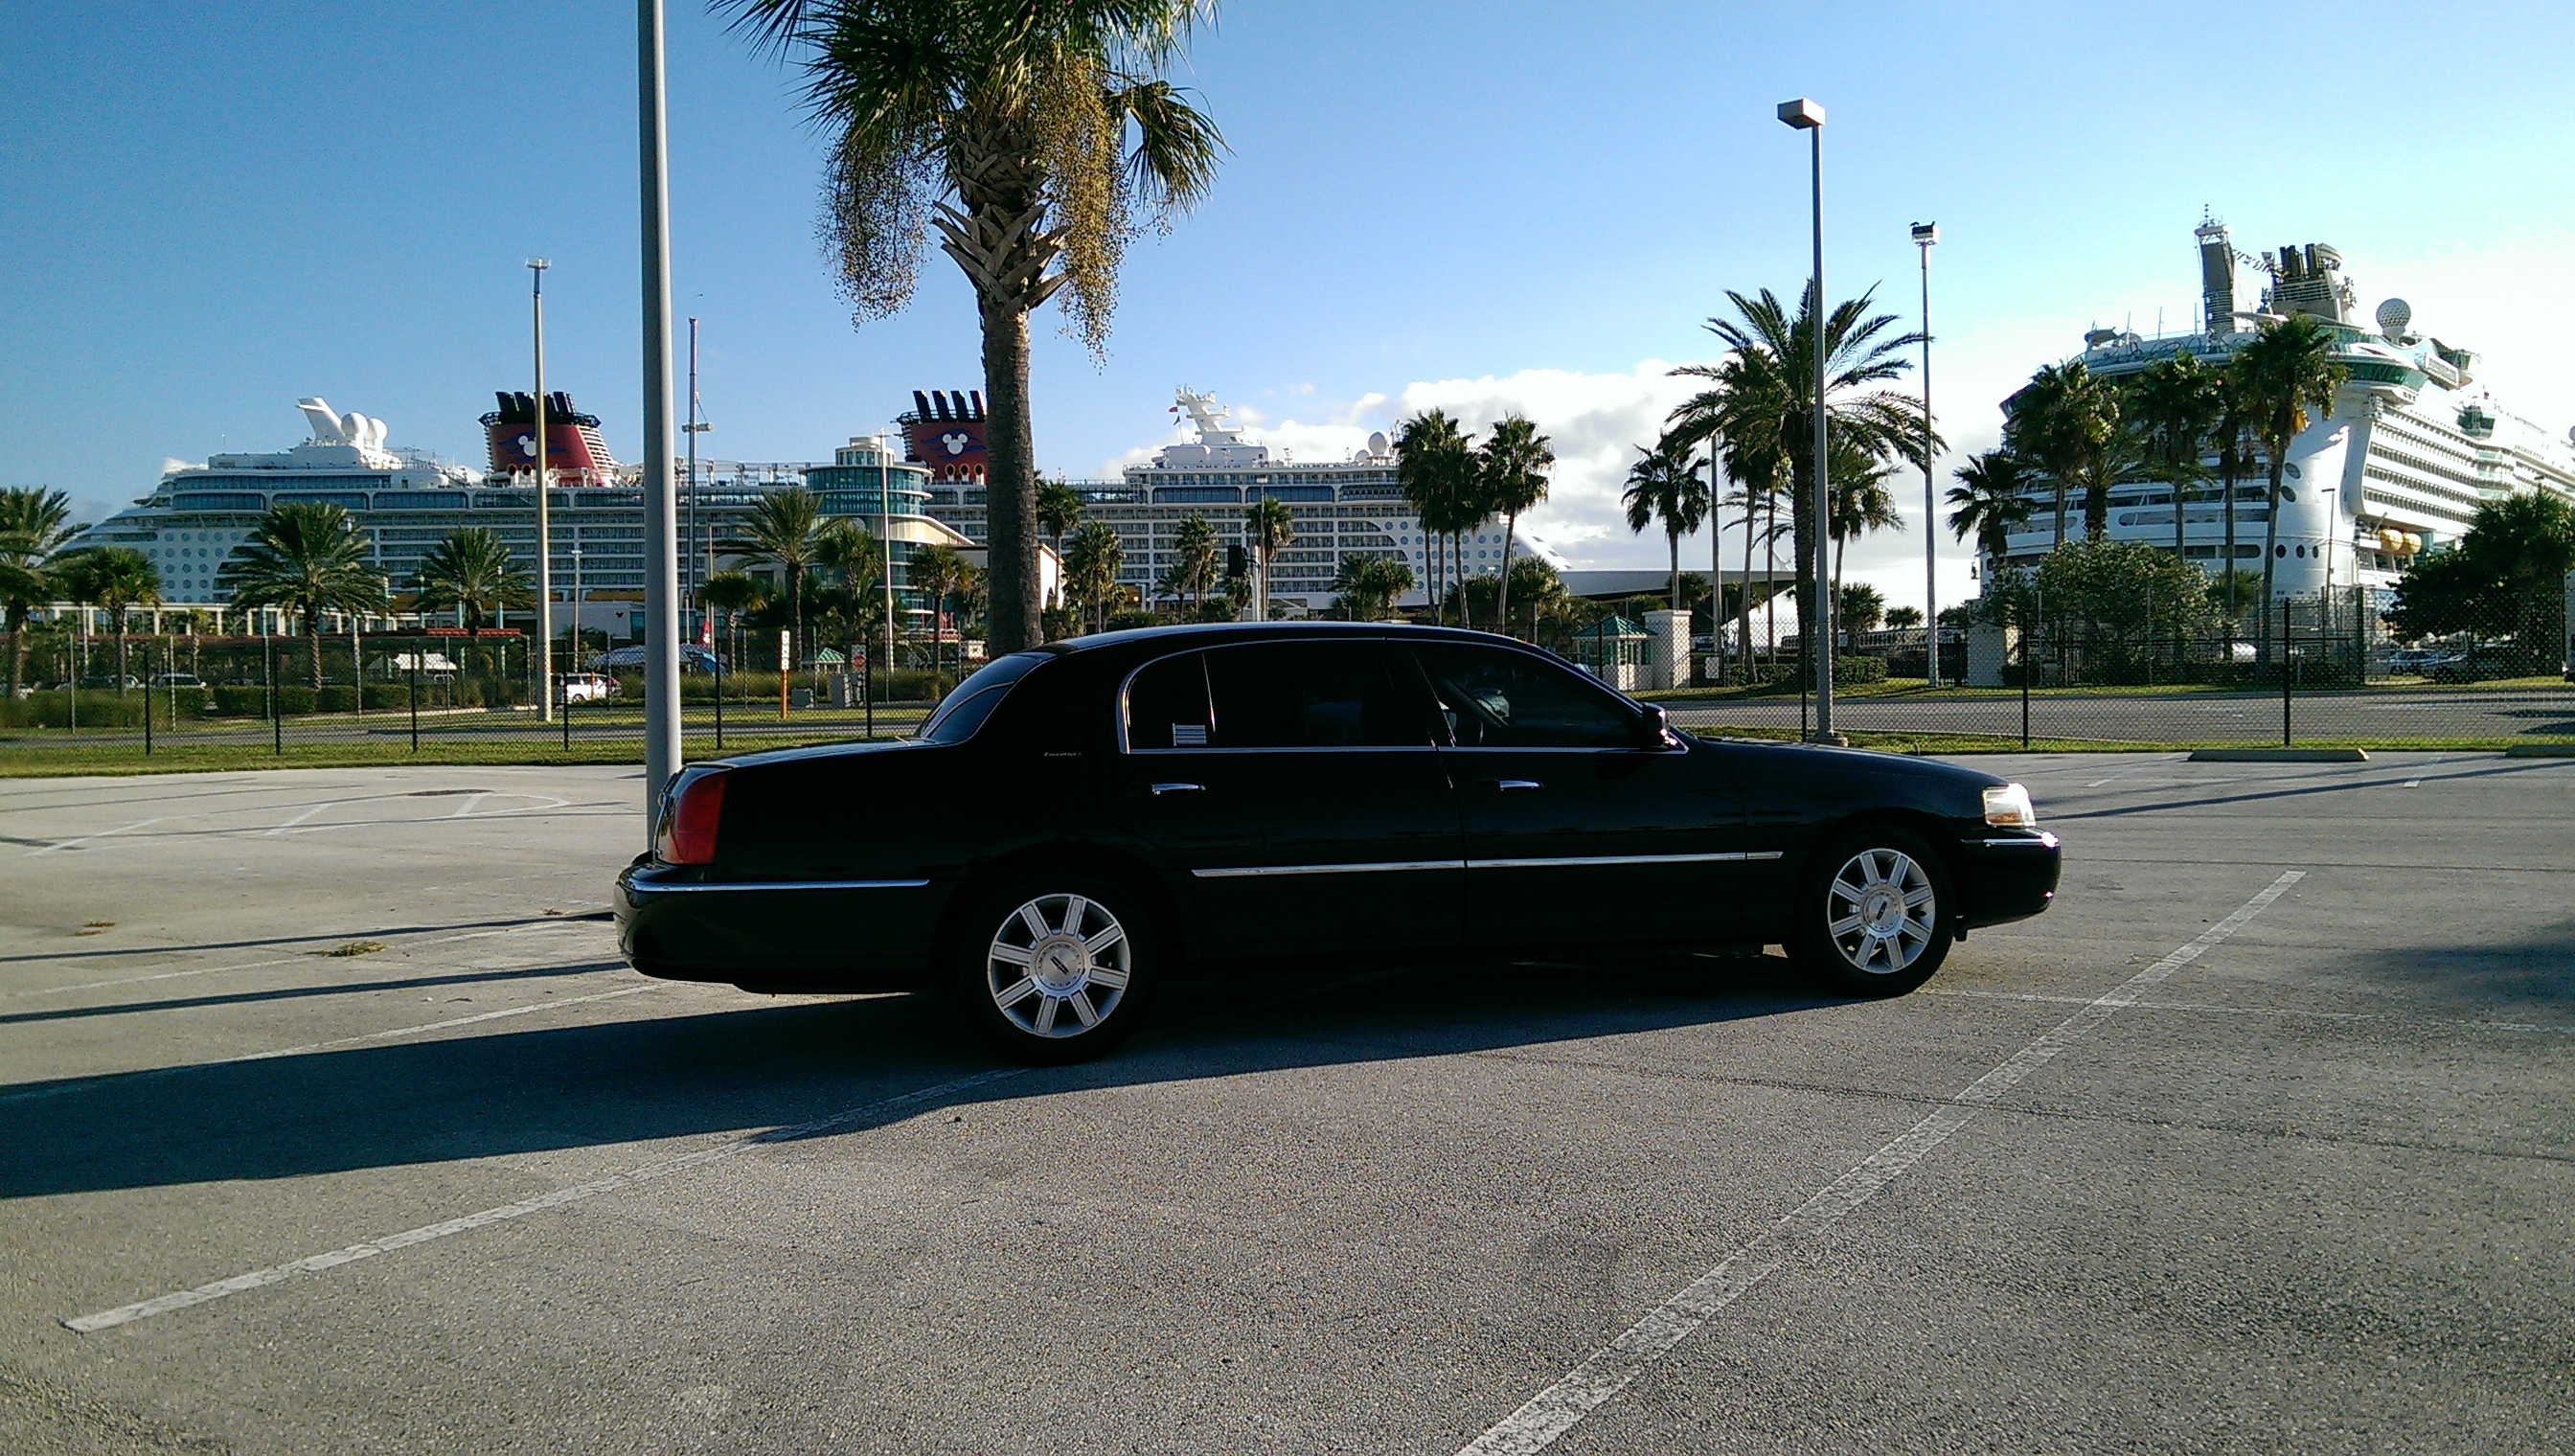 Car hire at orlando sanford airport